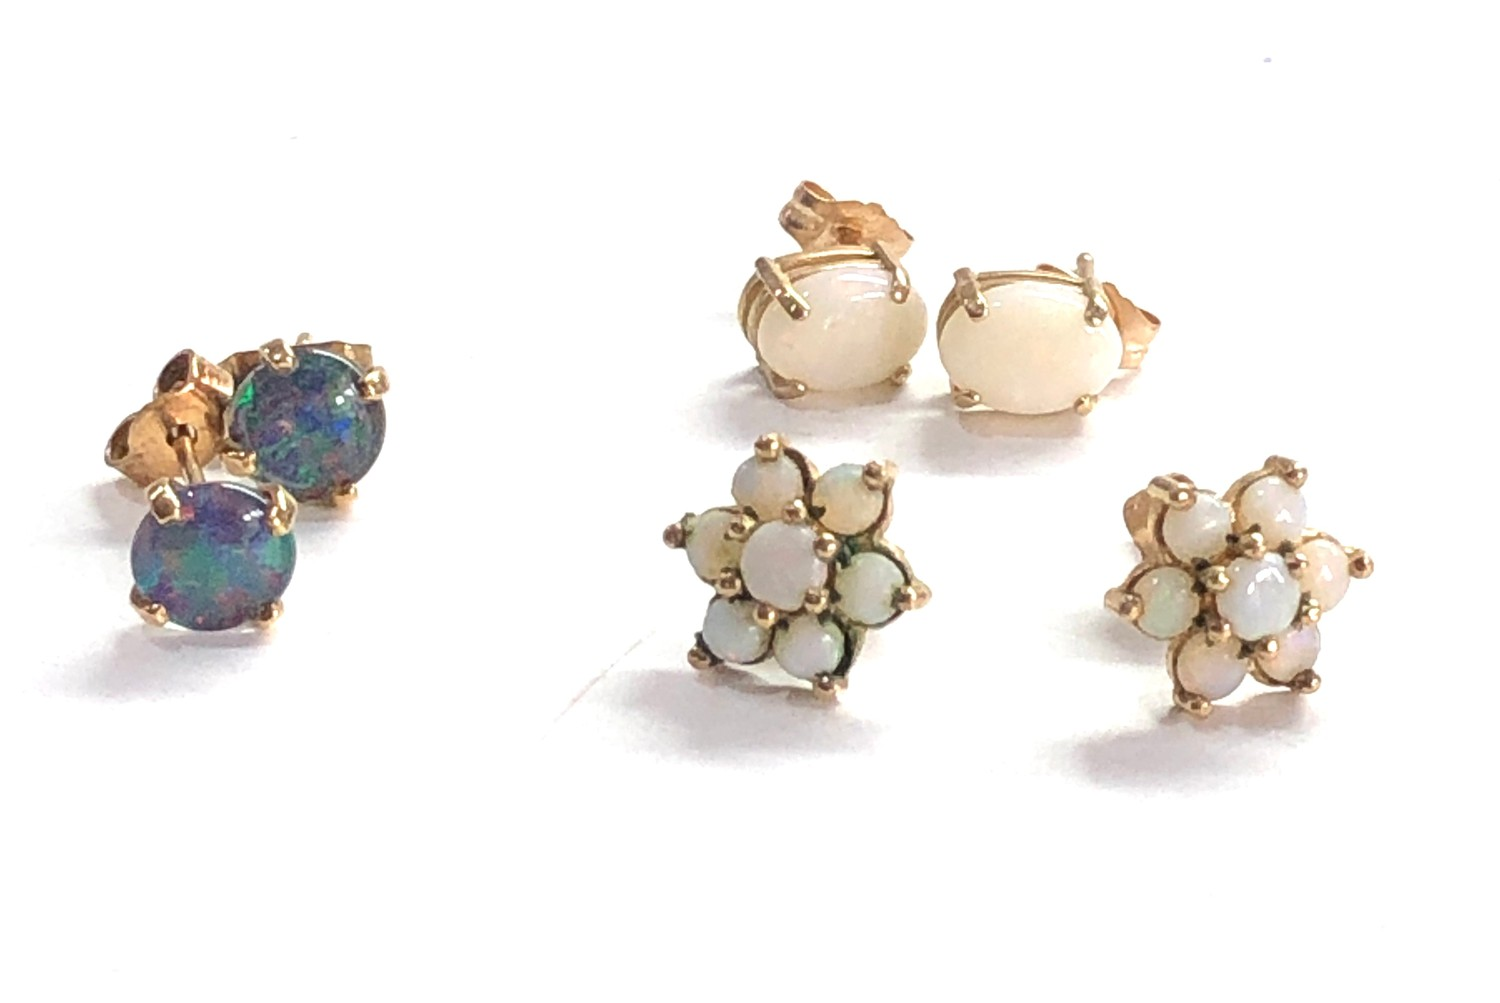 3 x 9ct gold opal earrings inc. studs, cluster - Image 2 of 3